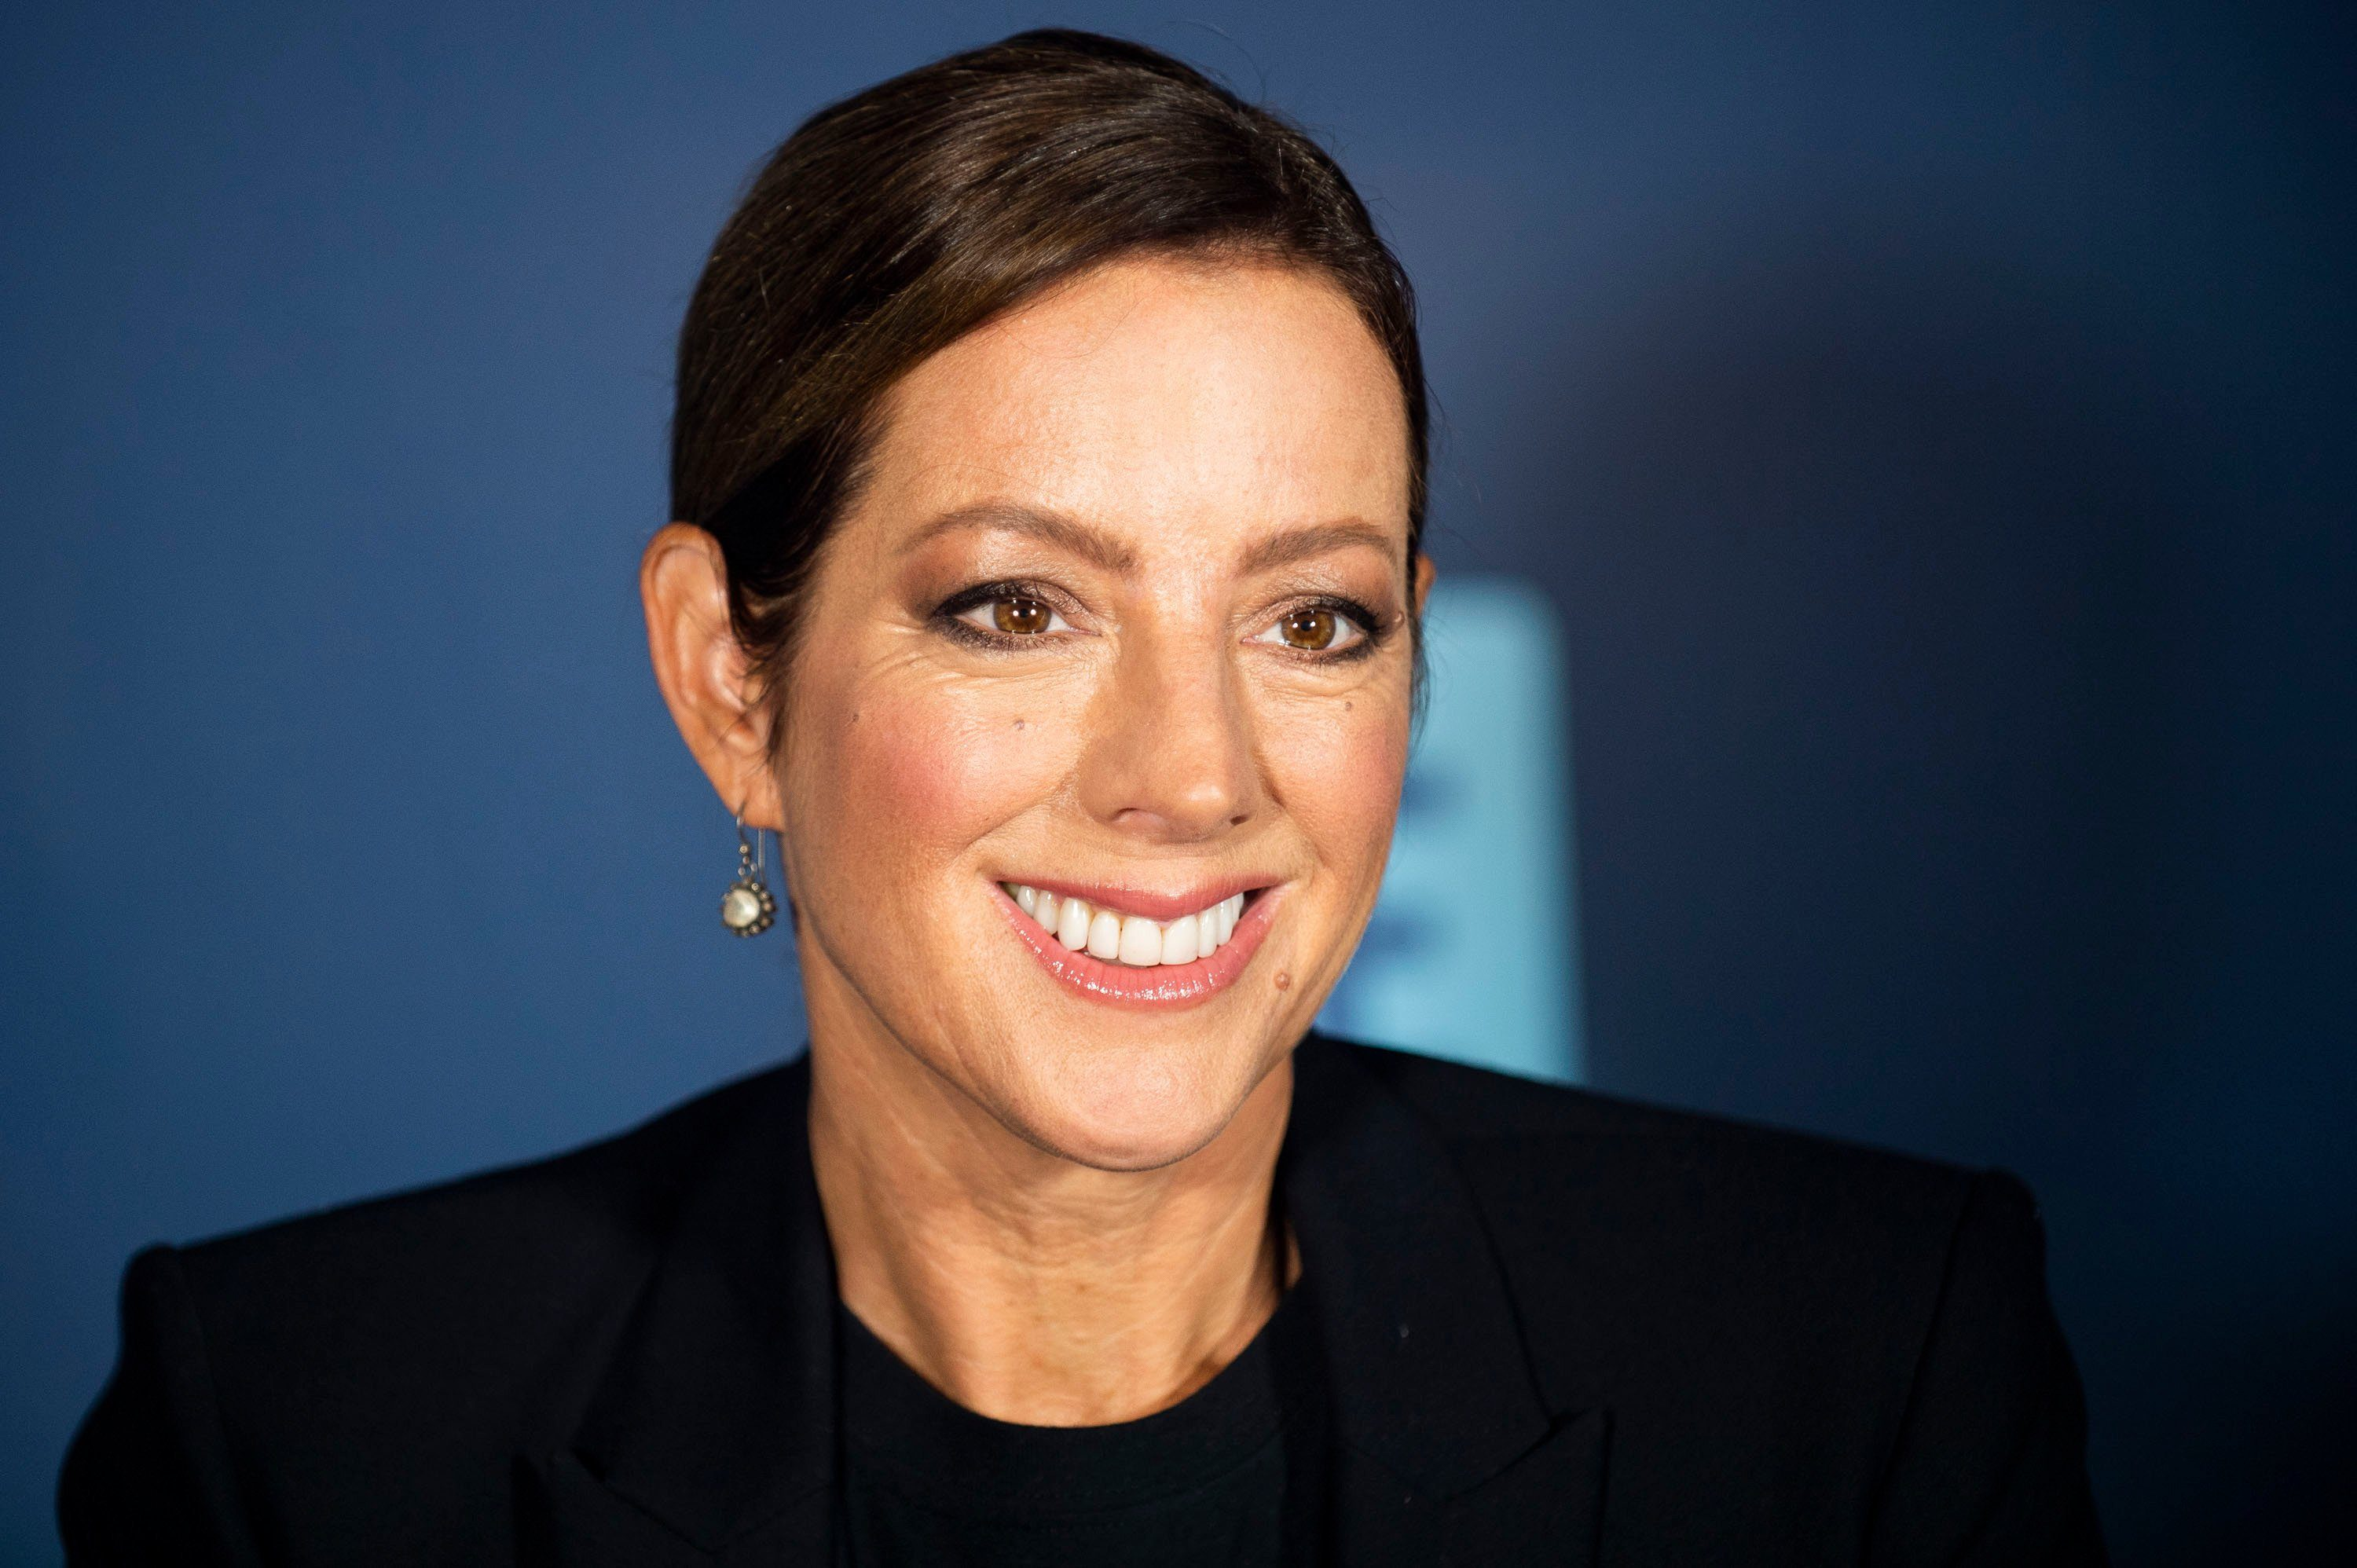 Mandatory Credit: Photo by Arthur Mola/Invision/AP/Shutterstock (10418465c) Sarah McLachlan attends WE Day Toronto at the Scotiabank Arena, in Toronto WE Day , Toronto, Canada - 19 Sep 2019